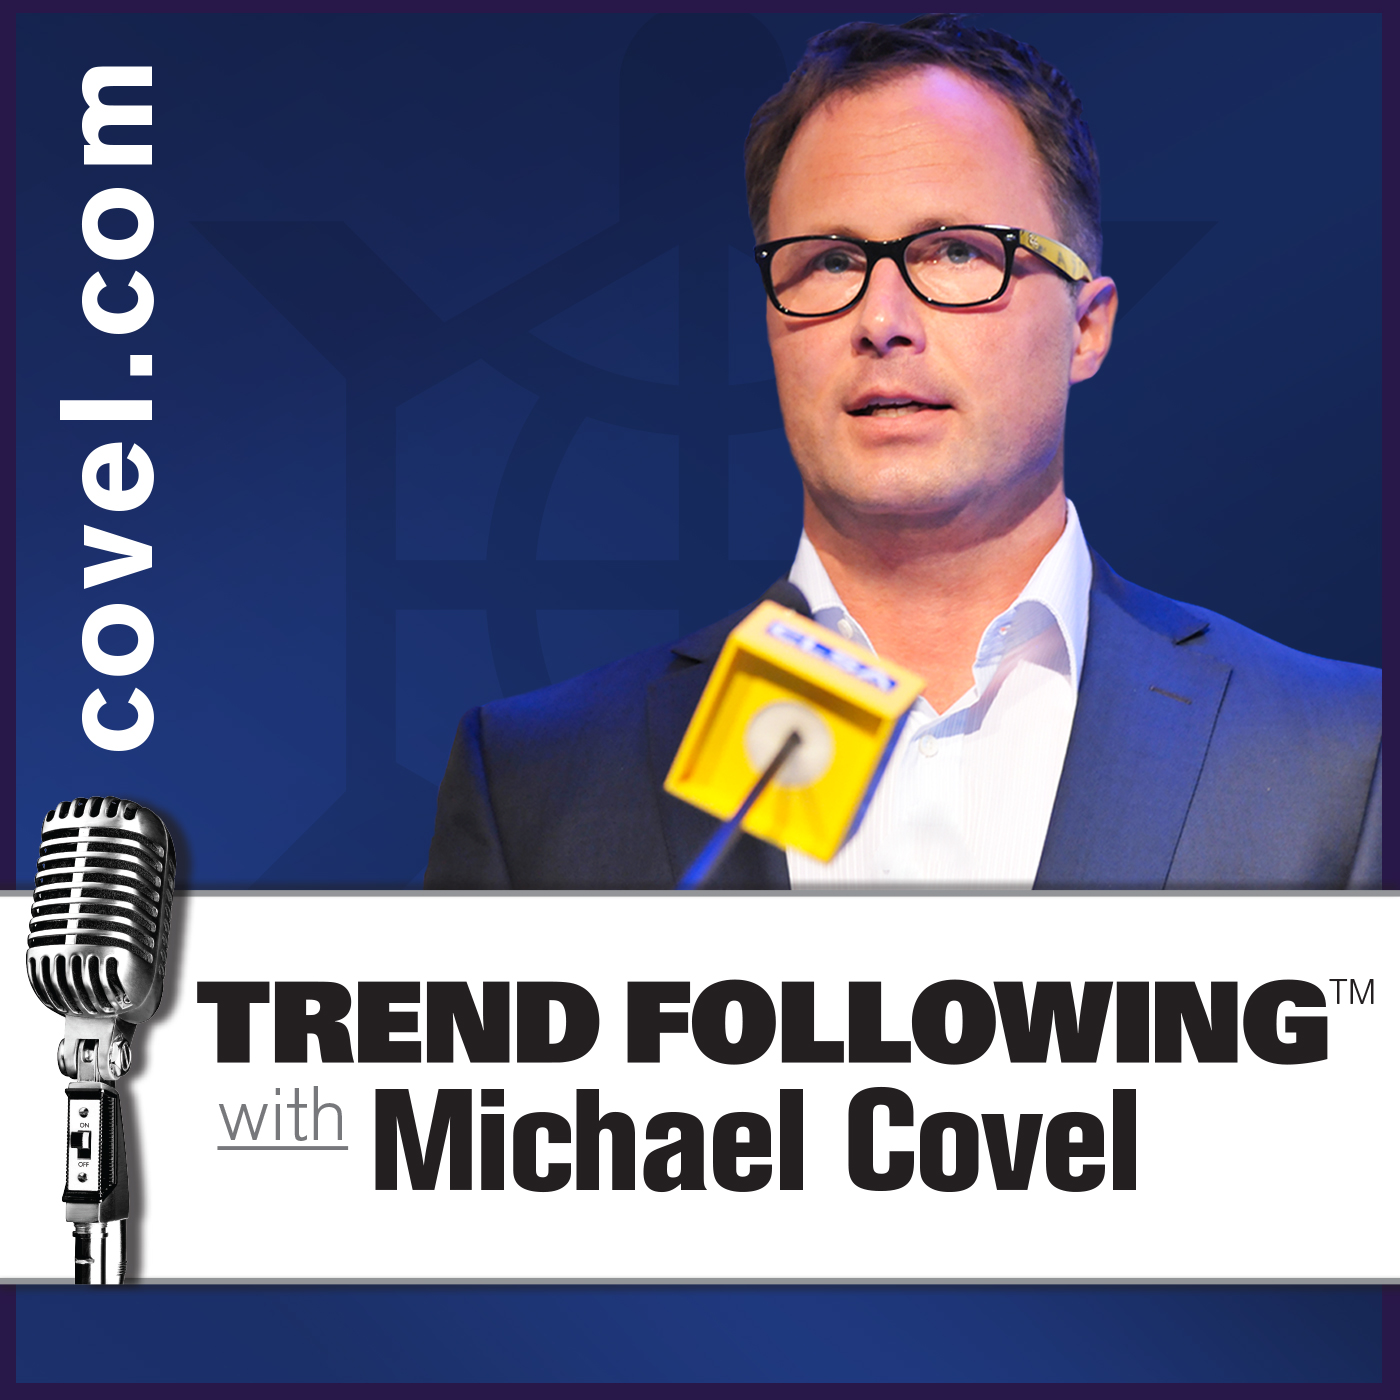 Ep. 525: Martin Bergin Interview #2 with Michael Covel on Trend Following Radio